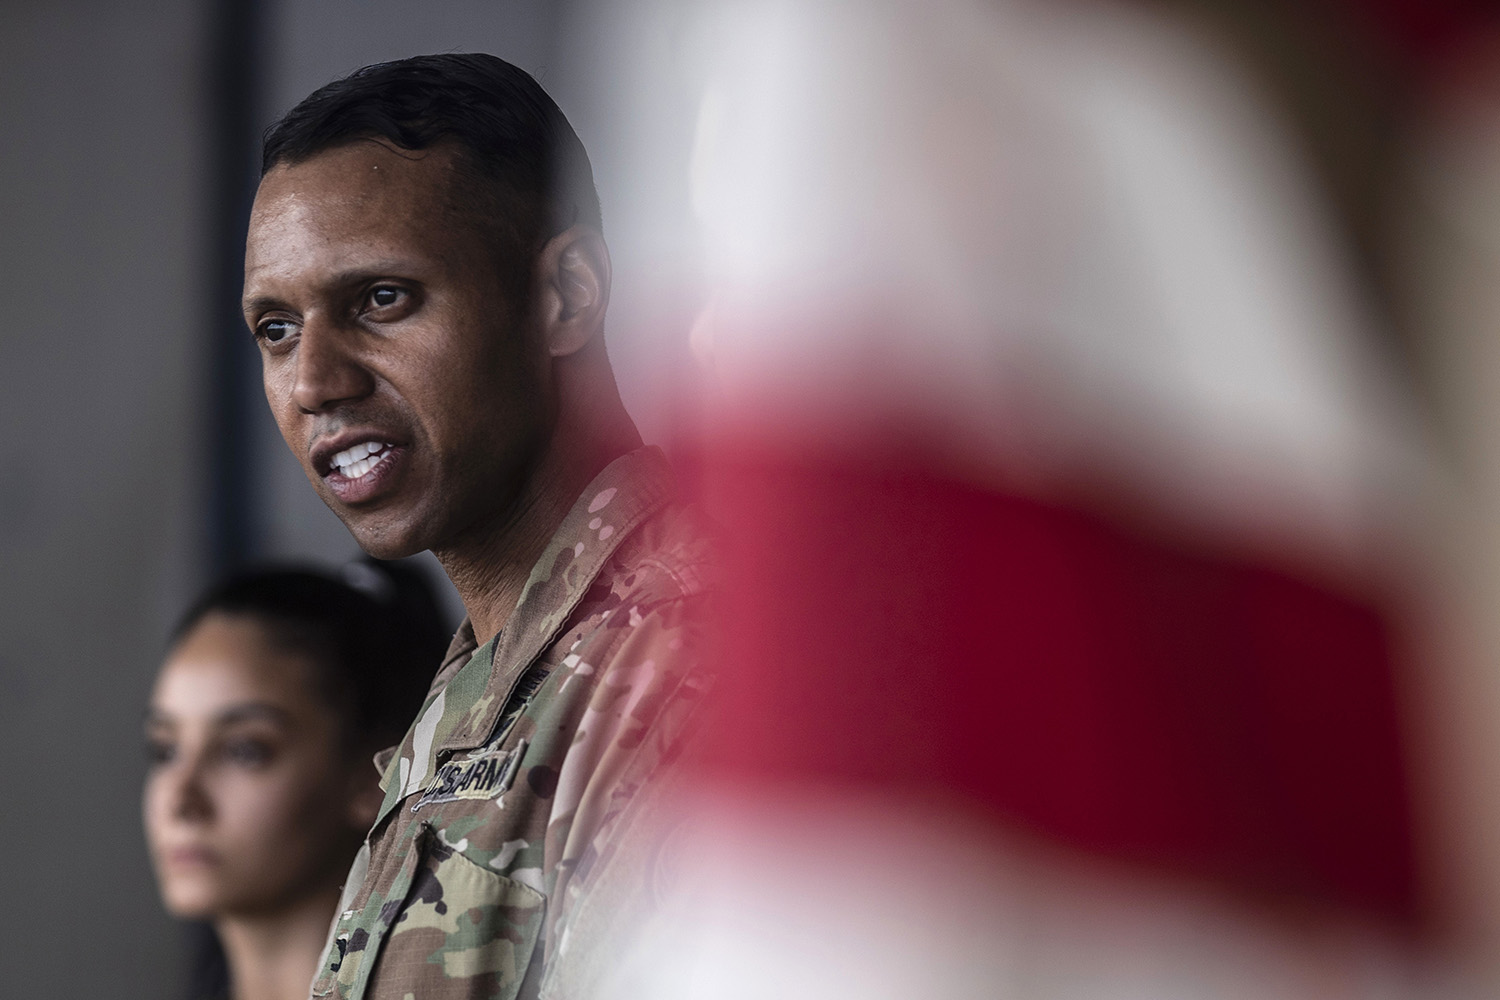 U.S. Army Col. Myles Caggins, then official military spokesperson for international military intervention against the Islamic State, speaks at a military base in Rumaylan in Syria's northeastern Hasakeh province on July 28.